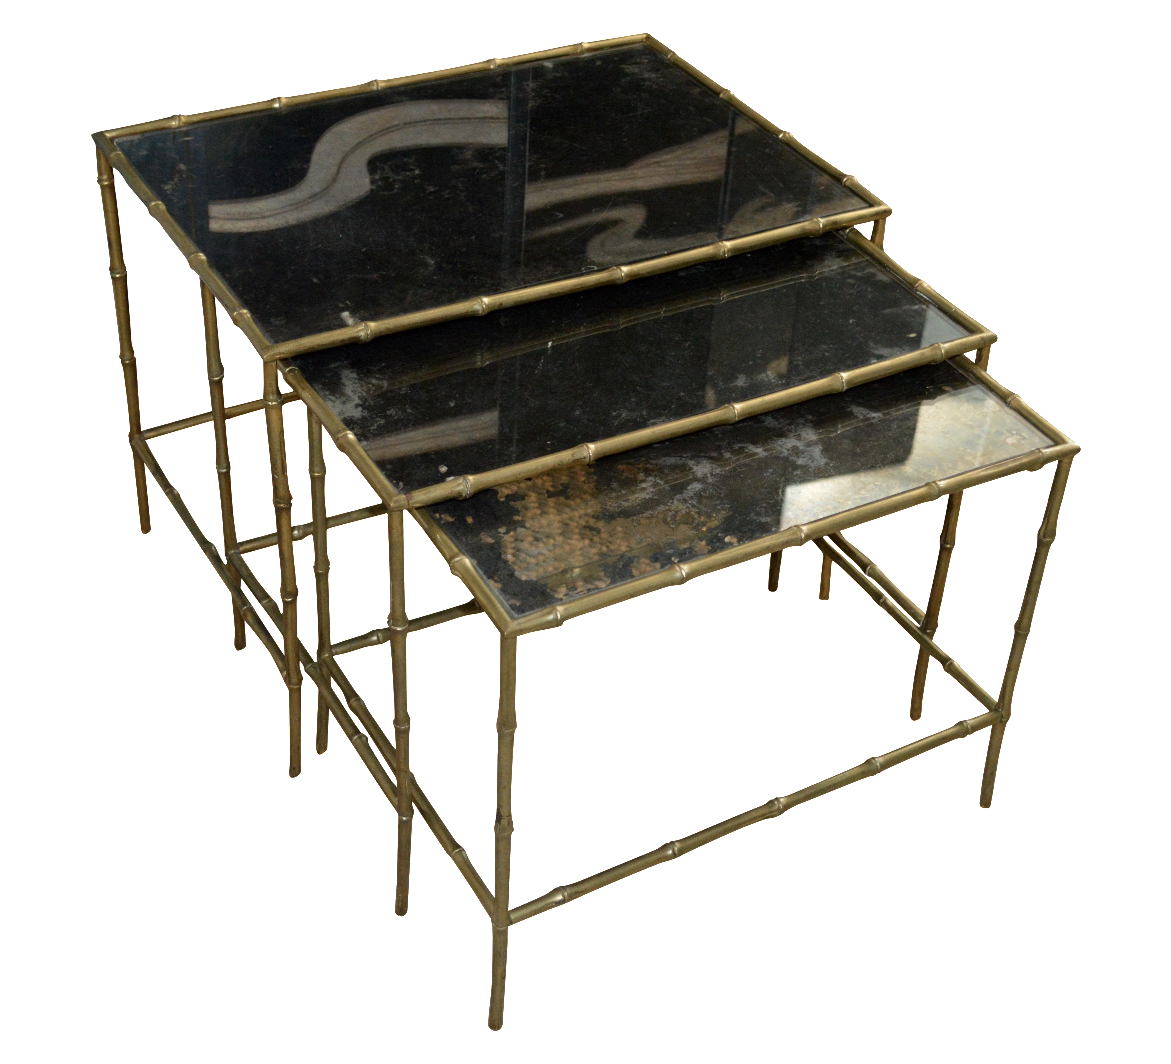 Vintage Brass Bamboo Nesting Tables Set Of 3 Chairish. Full resolution‎  image, nominally Width 1171 Height 1064 pixels, image with #5D4E2D.